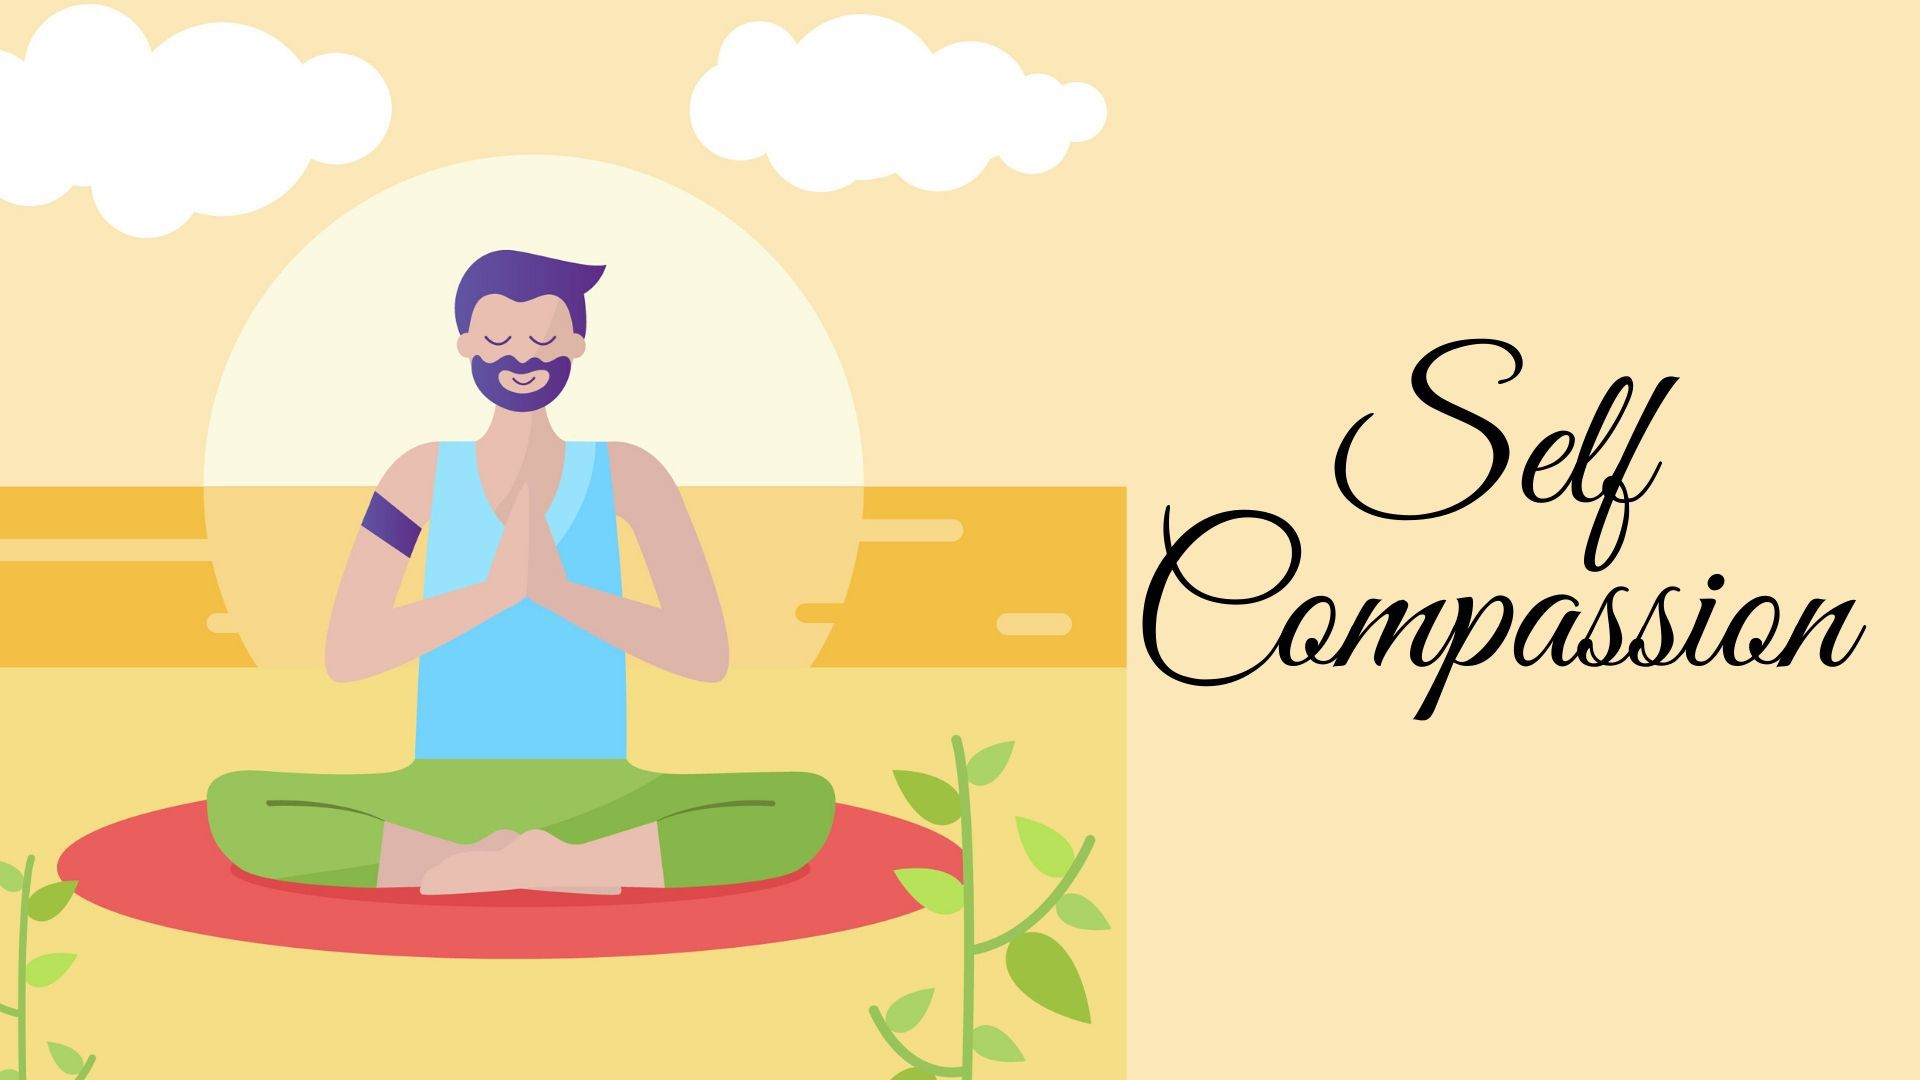 CERTIFIED: Developing Self Compassion with Mindfulness